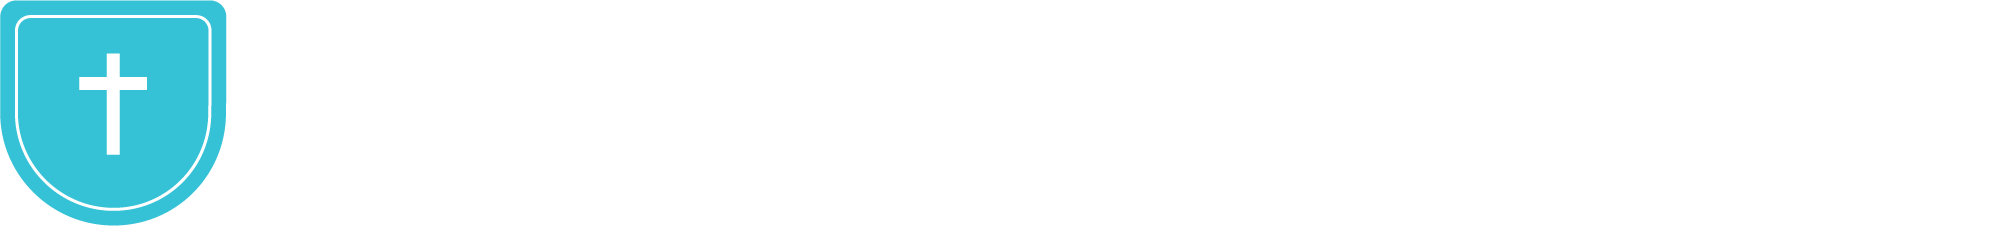 Richard Iddings Logo